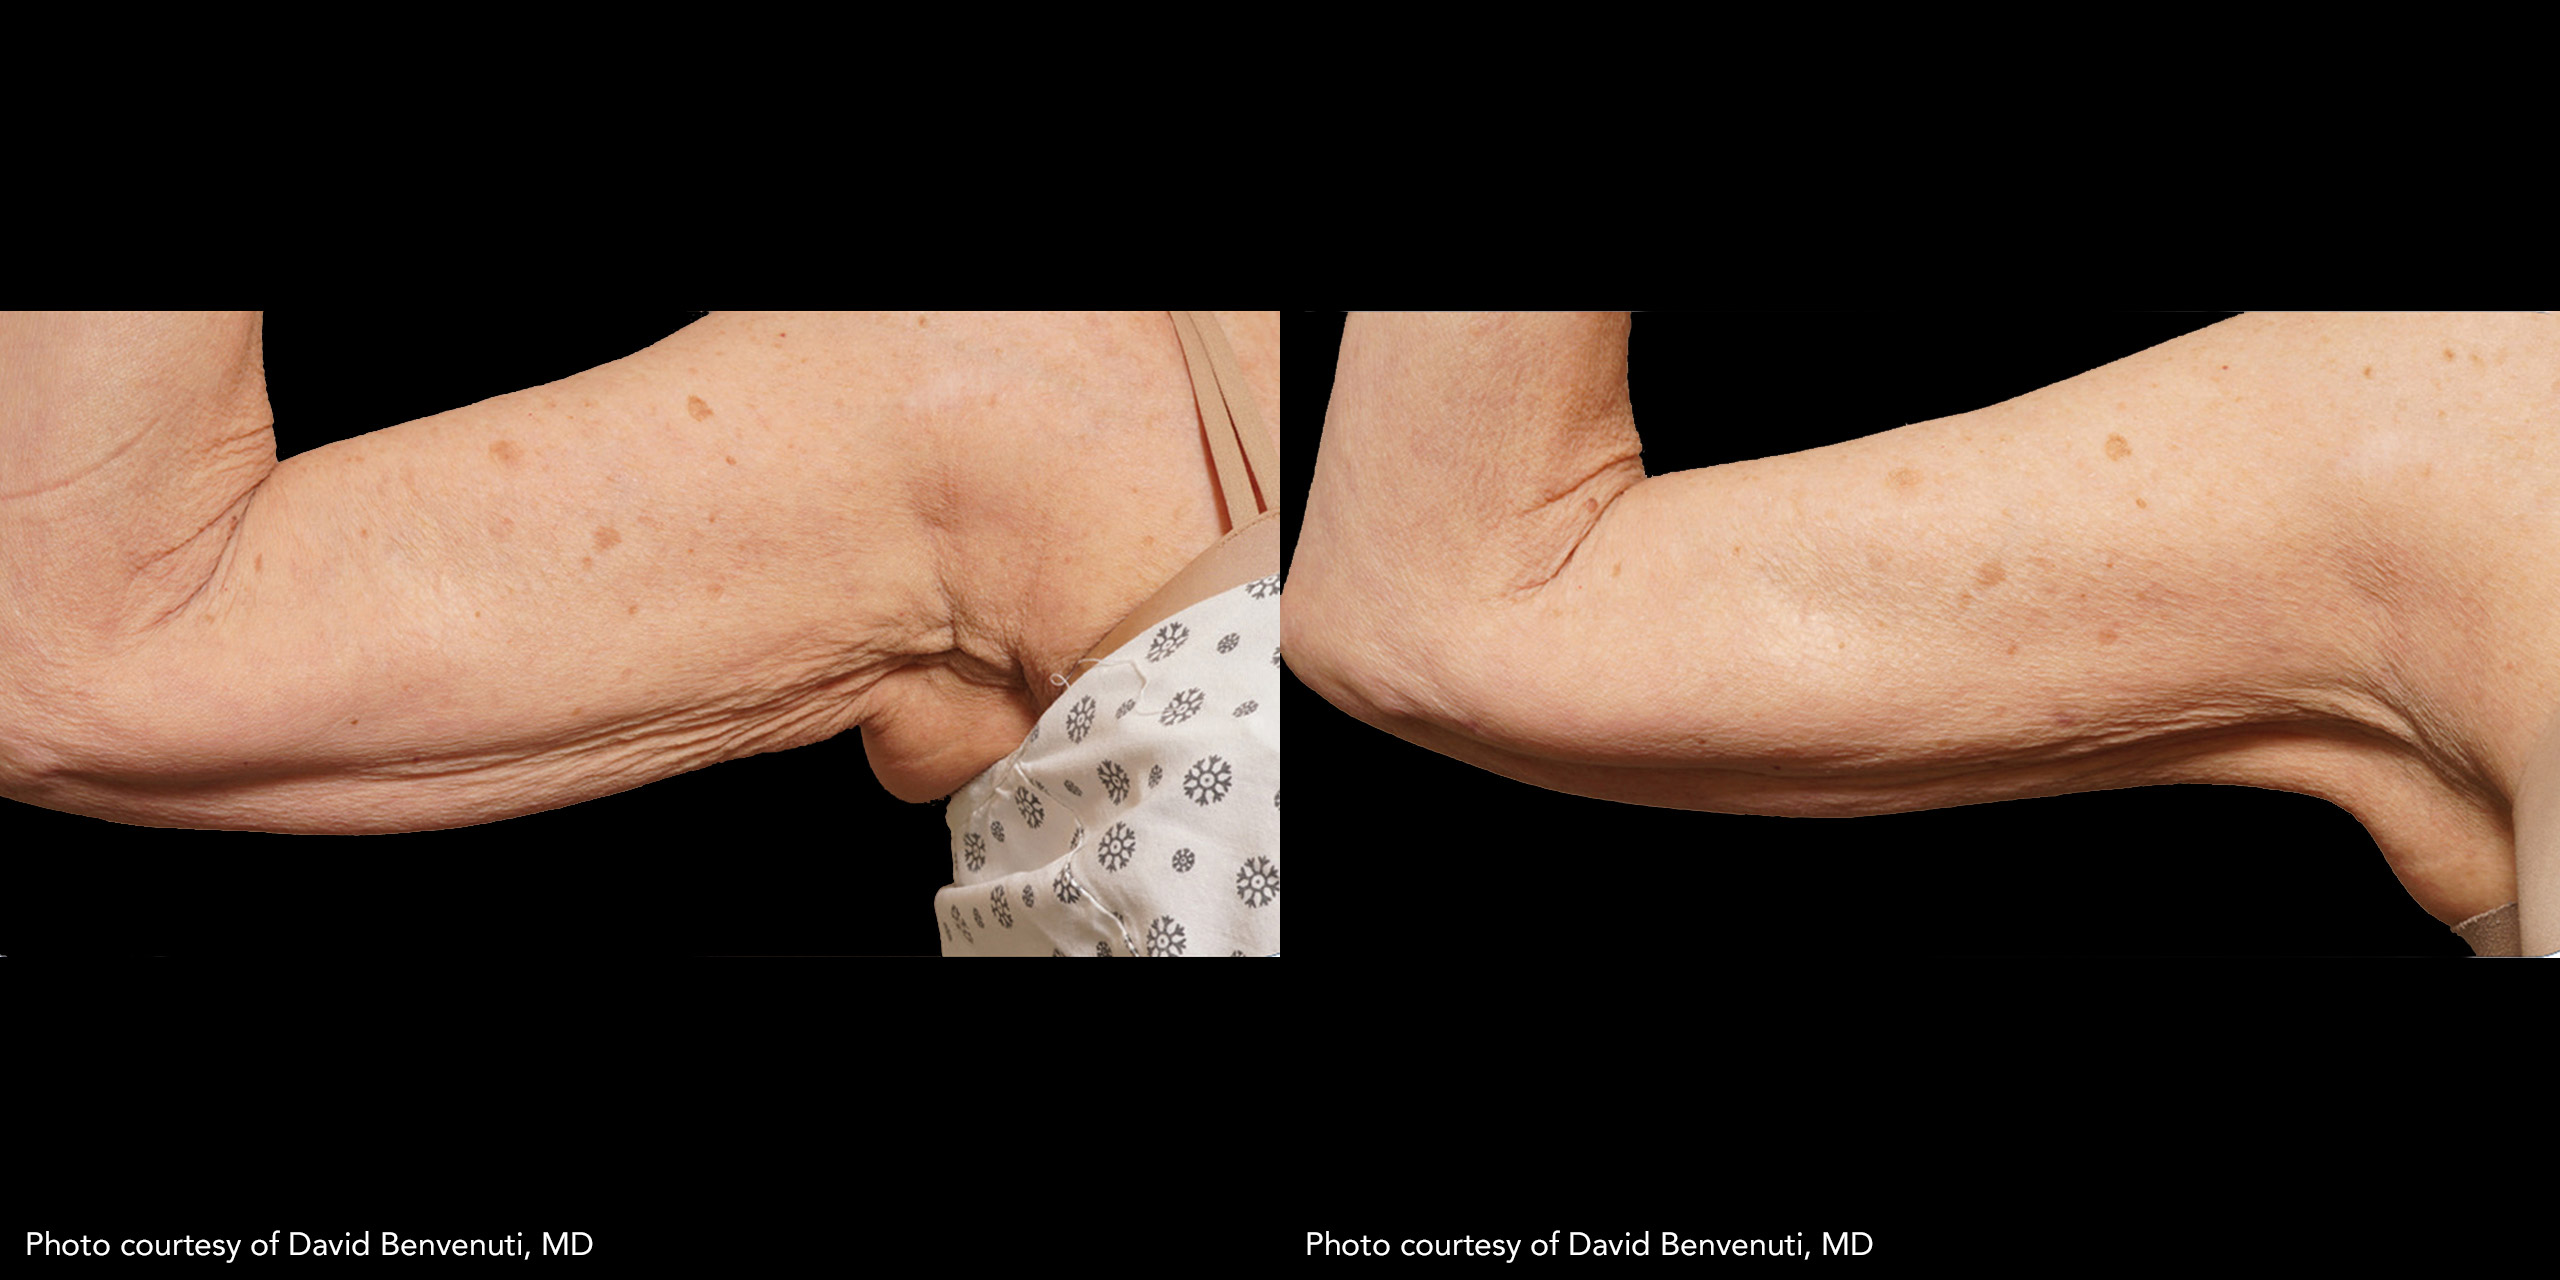 Subdermal Skin Tightening of the arm Using JPlasma